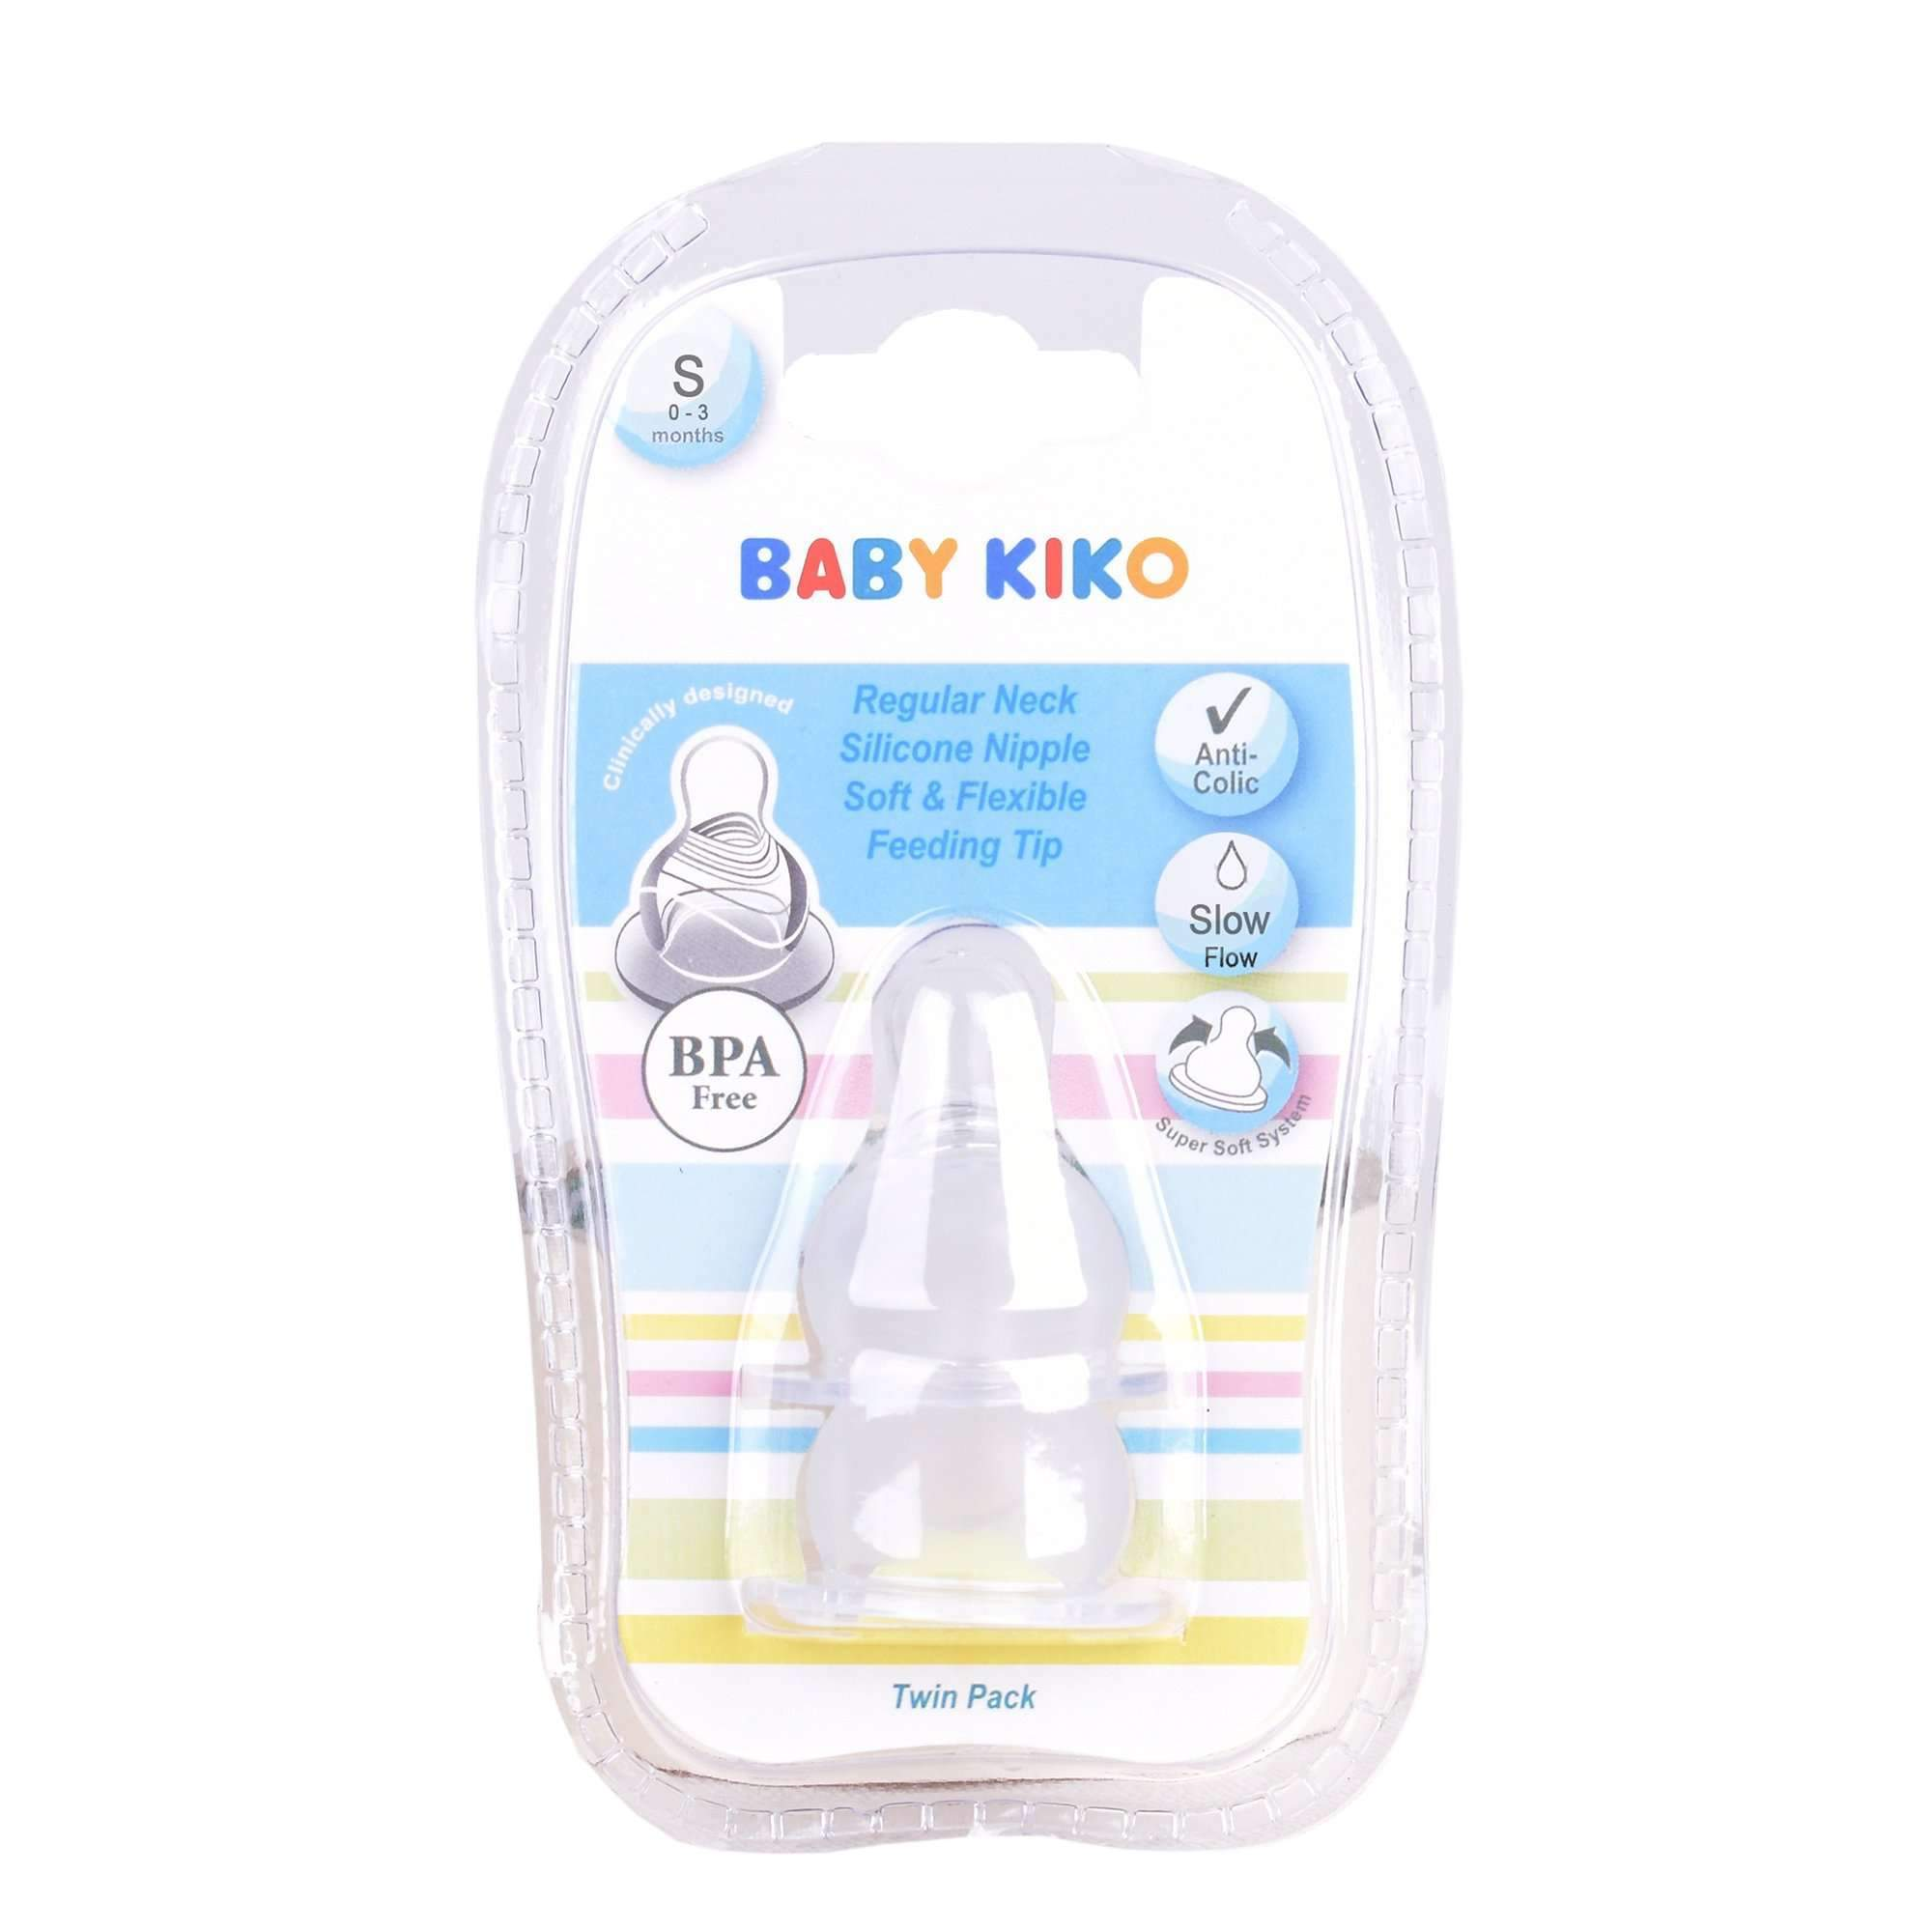 Baby KIKO Anti-Colic Regular Neck Silicone Nipples - 2 pcs Per Pack 3502-002 : Buy Baby KIKO online at CMG.MY